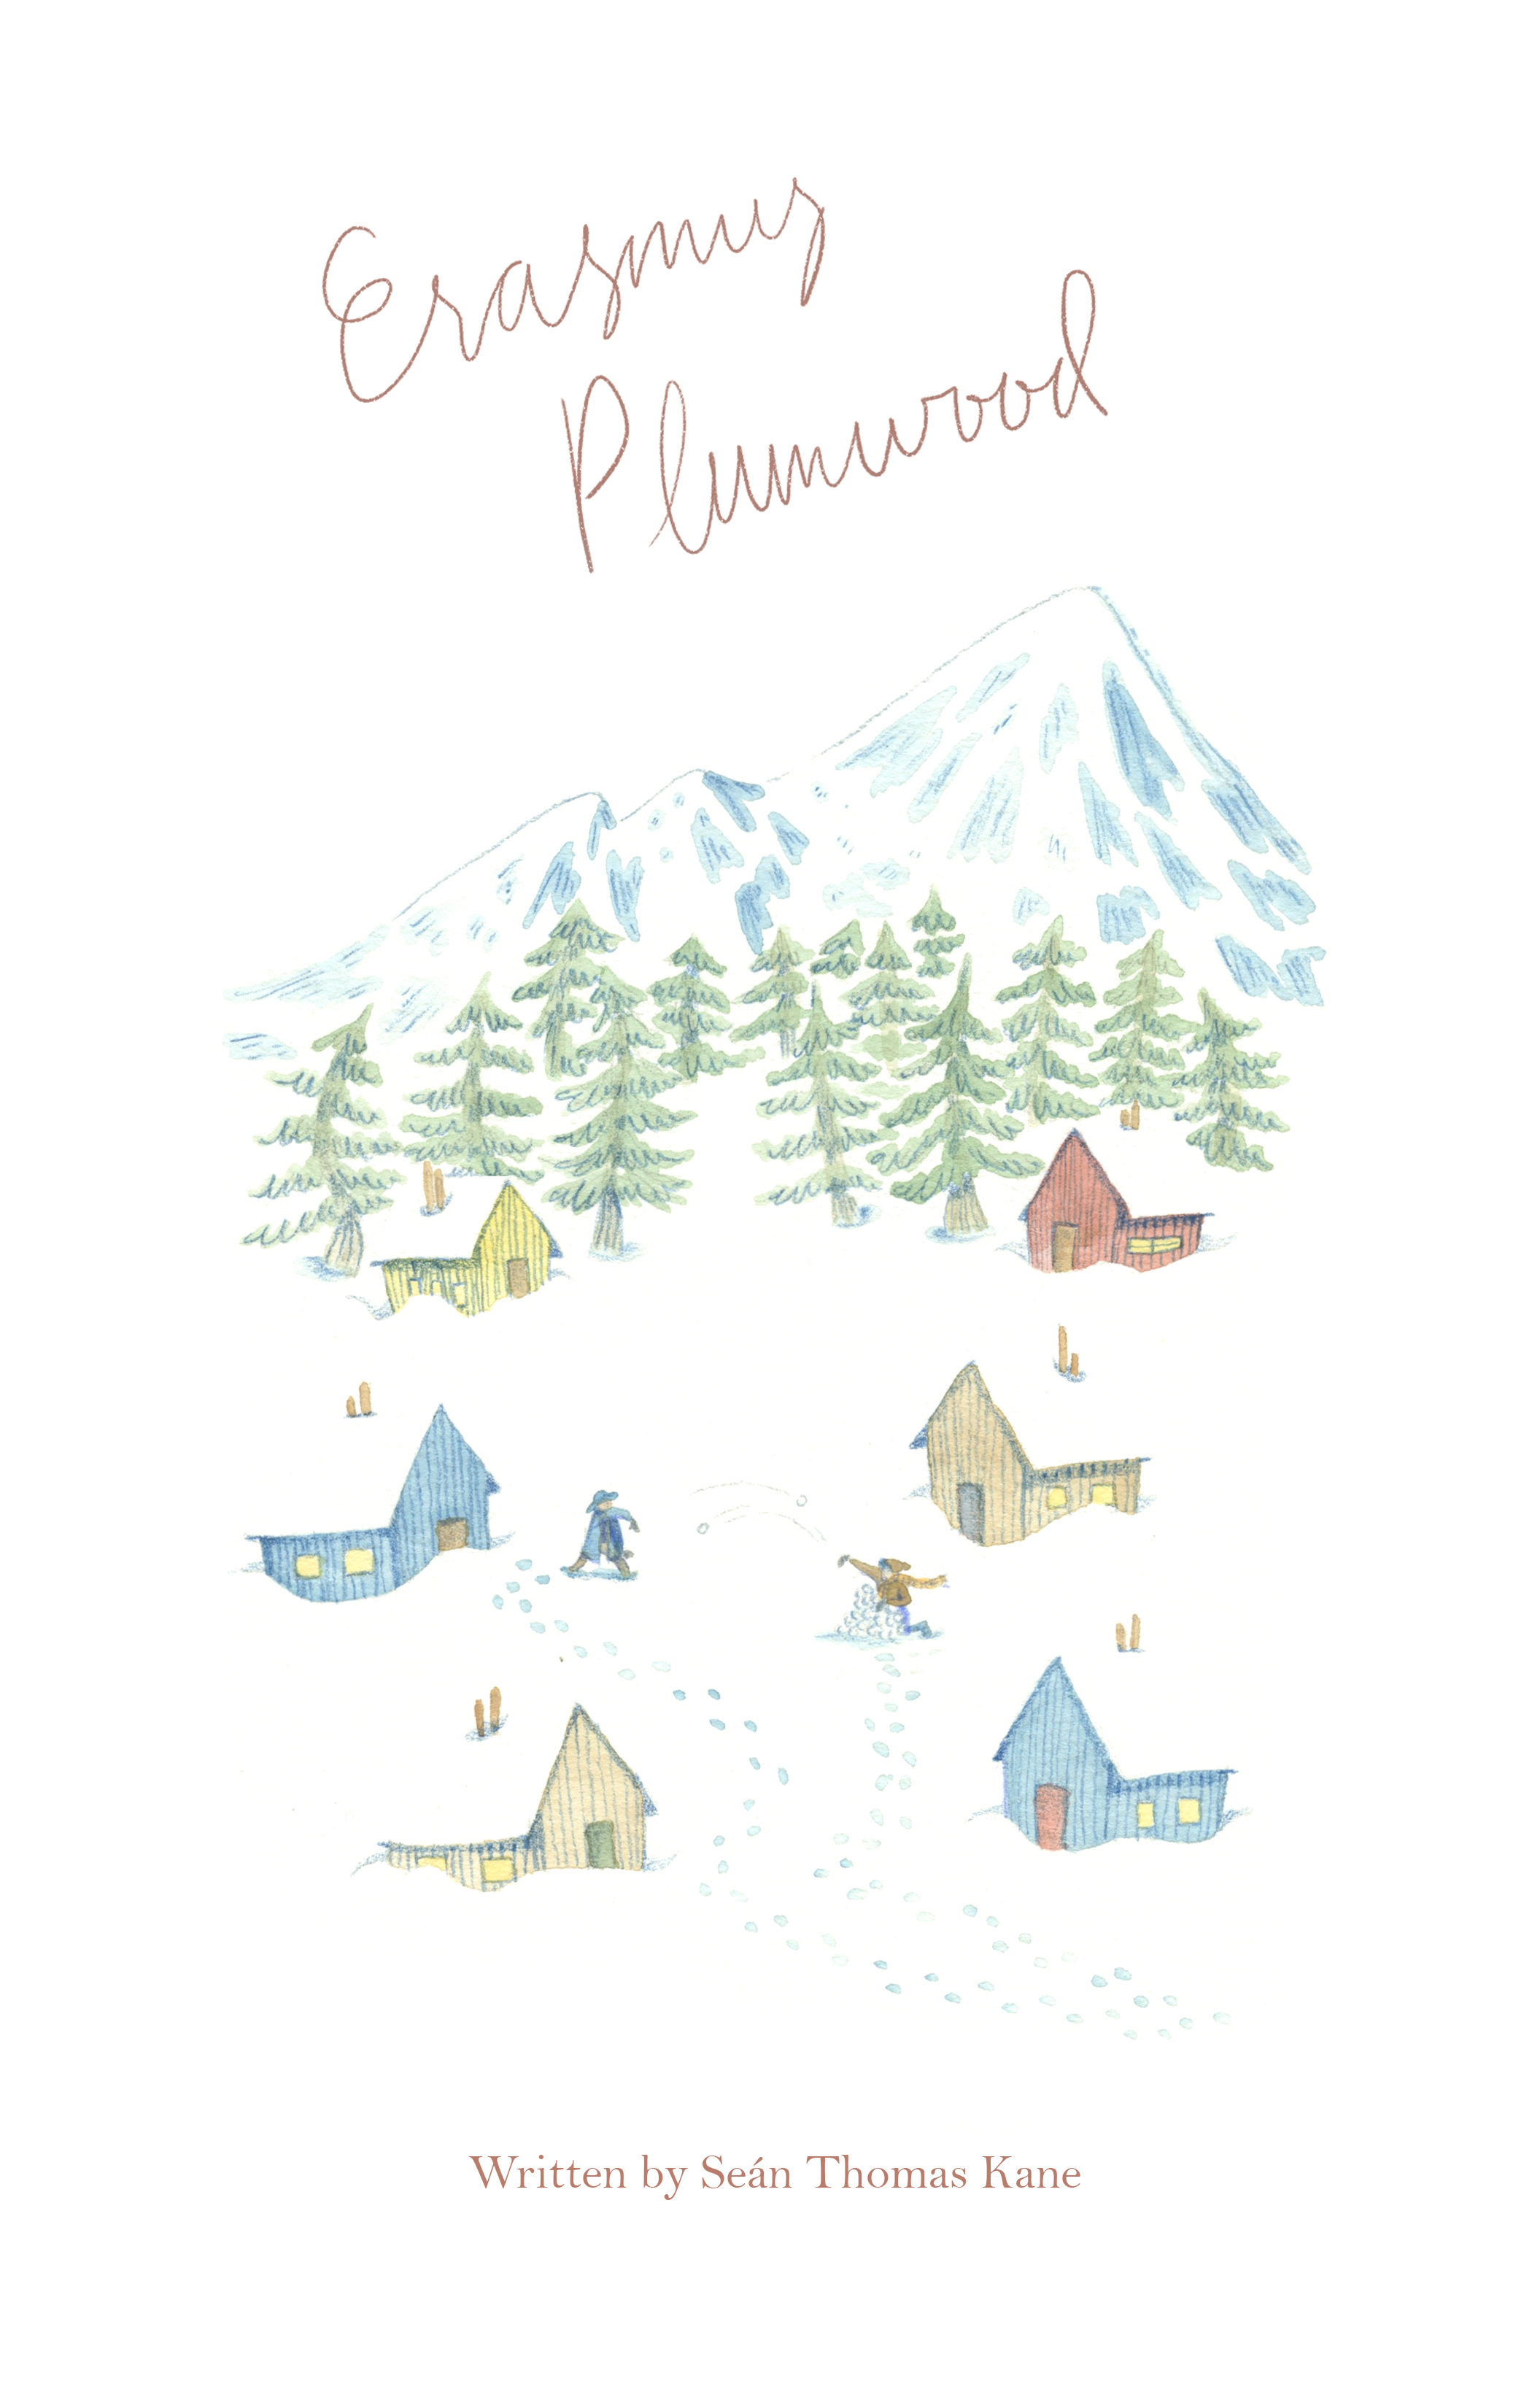 ERASMUS PLUMWOOD - This delightful story about two friends on a trip in New Hampshire was illustrated by Emily Henebrey and is now available on Amazon.